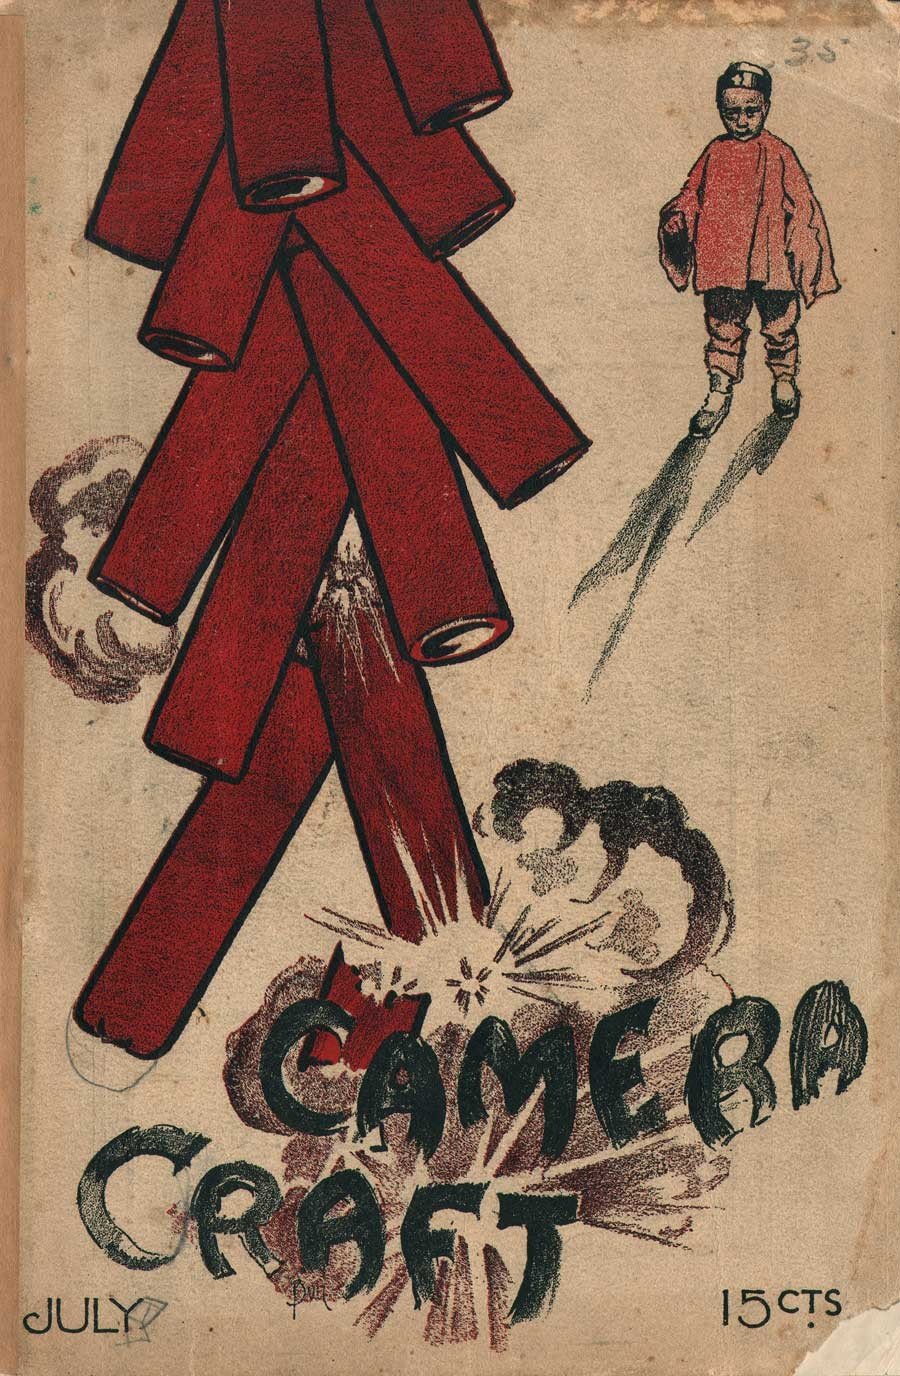 4camera-craft-july-1900-co